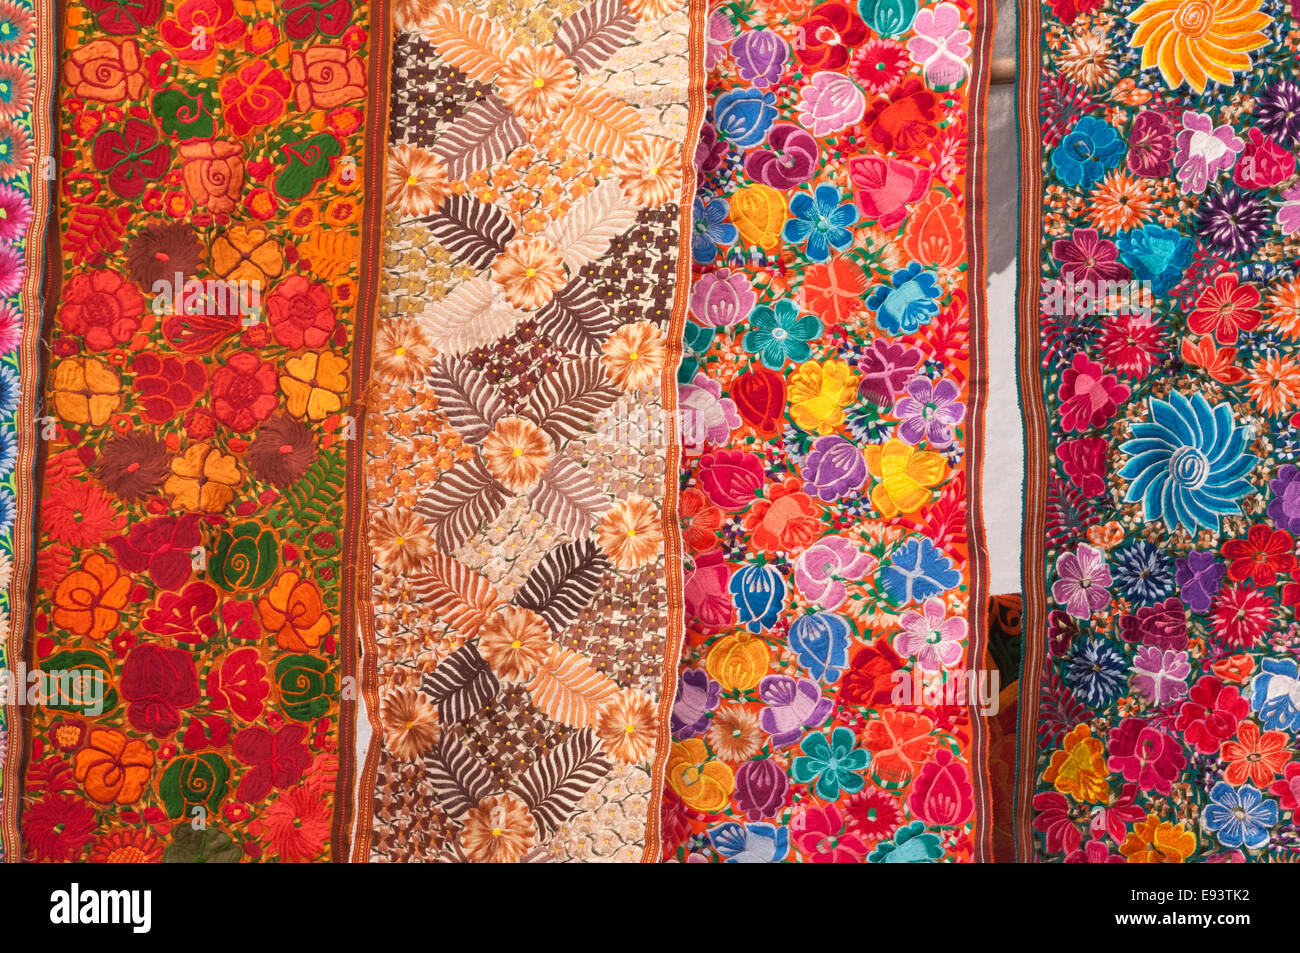 Colorful textiles, blankets for sale, Chichicastenango, Guatemala - Stock Image